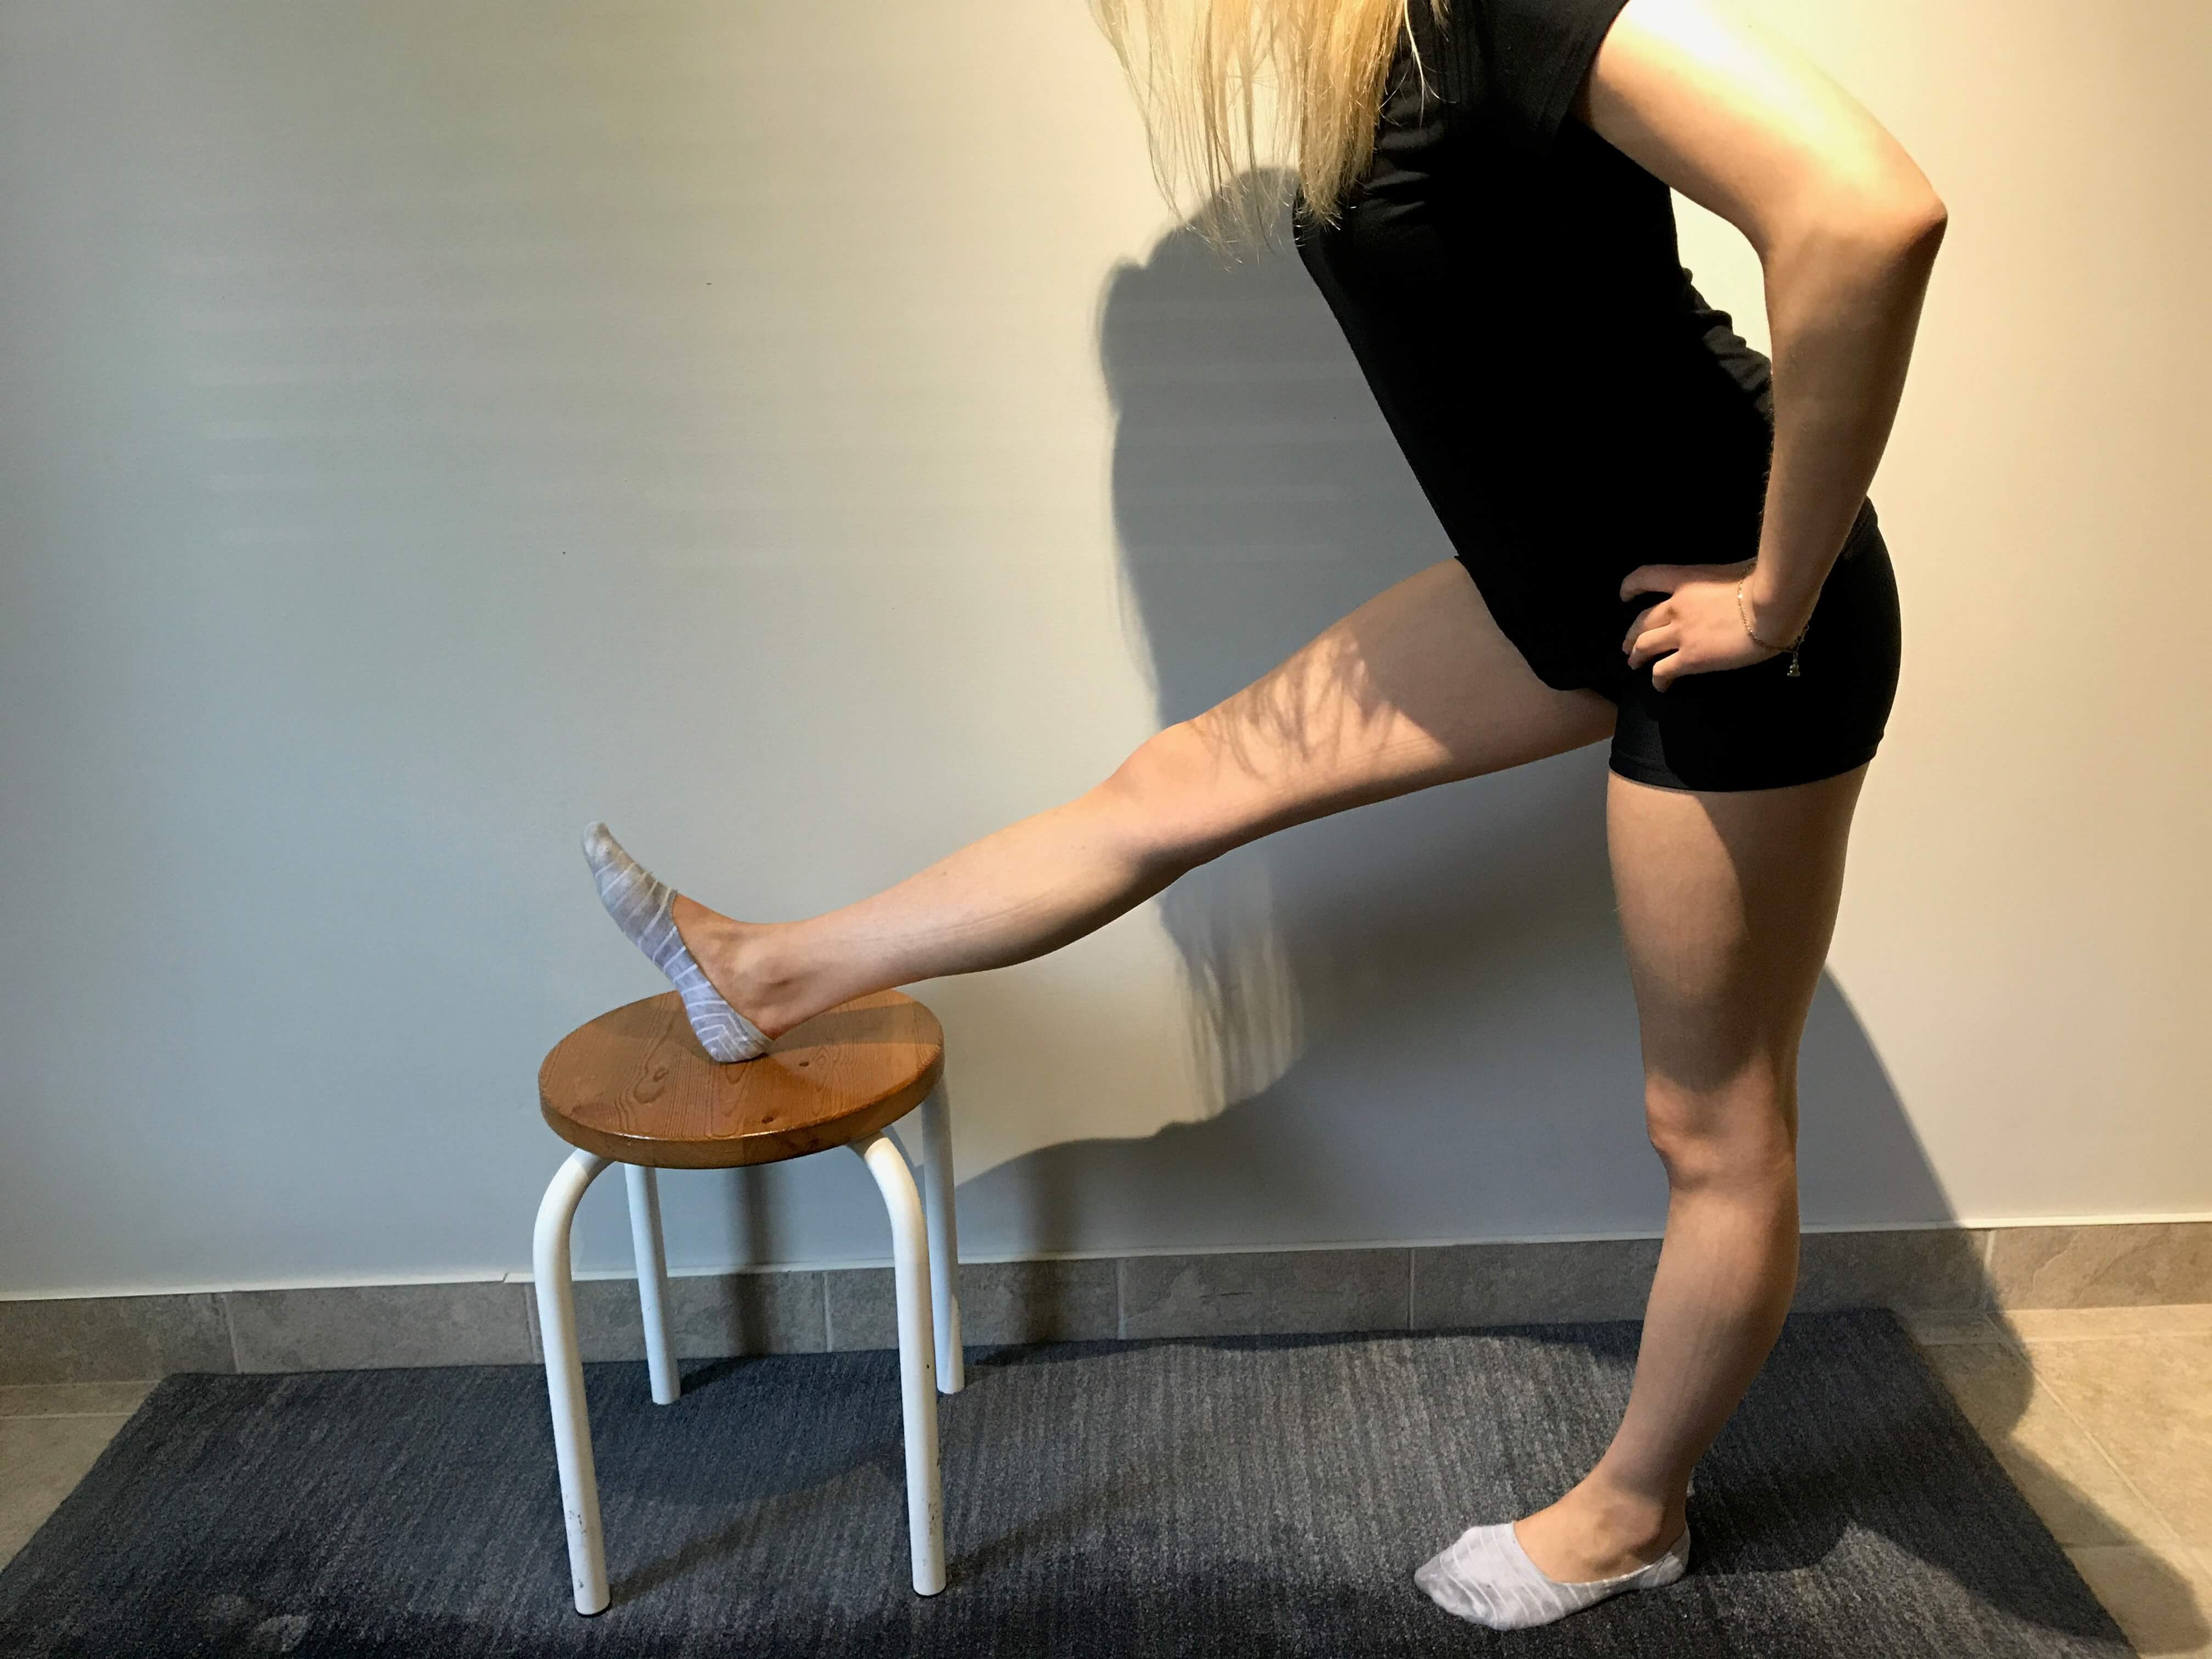 Etirement ischio jambiers pour syndrome femoro patellaire